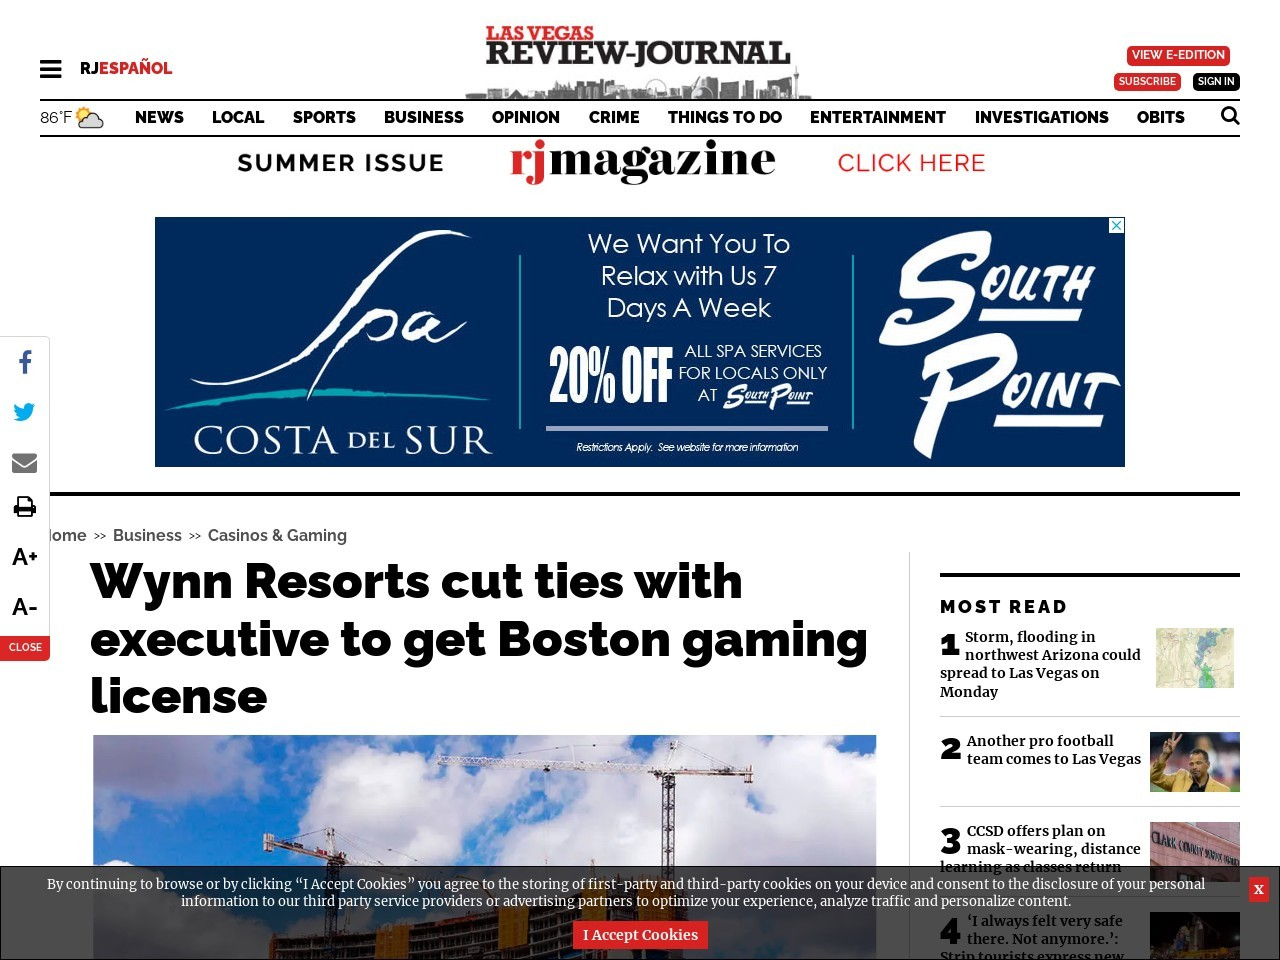 Wynn Resorts cut ties with executive to get Boston gaming license